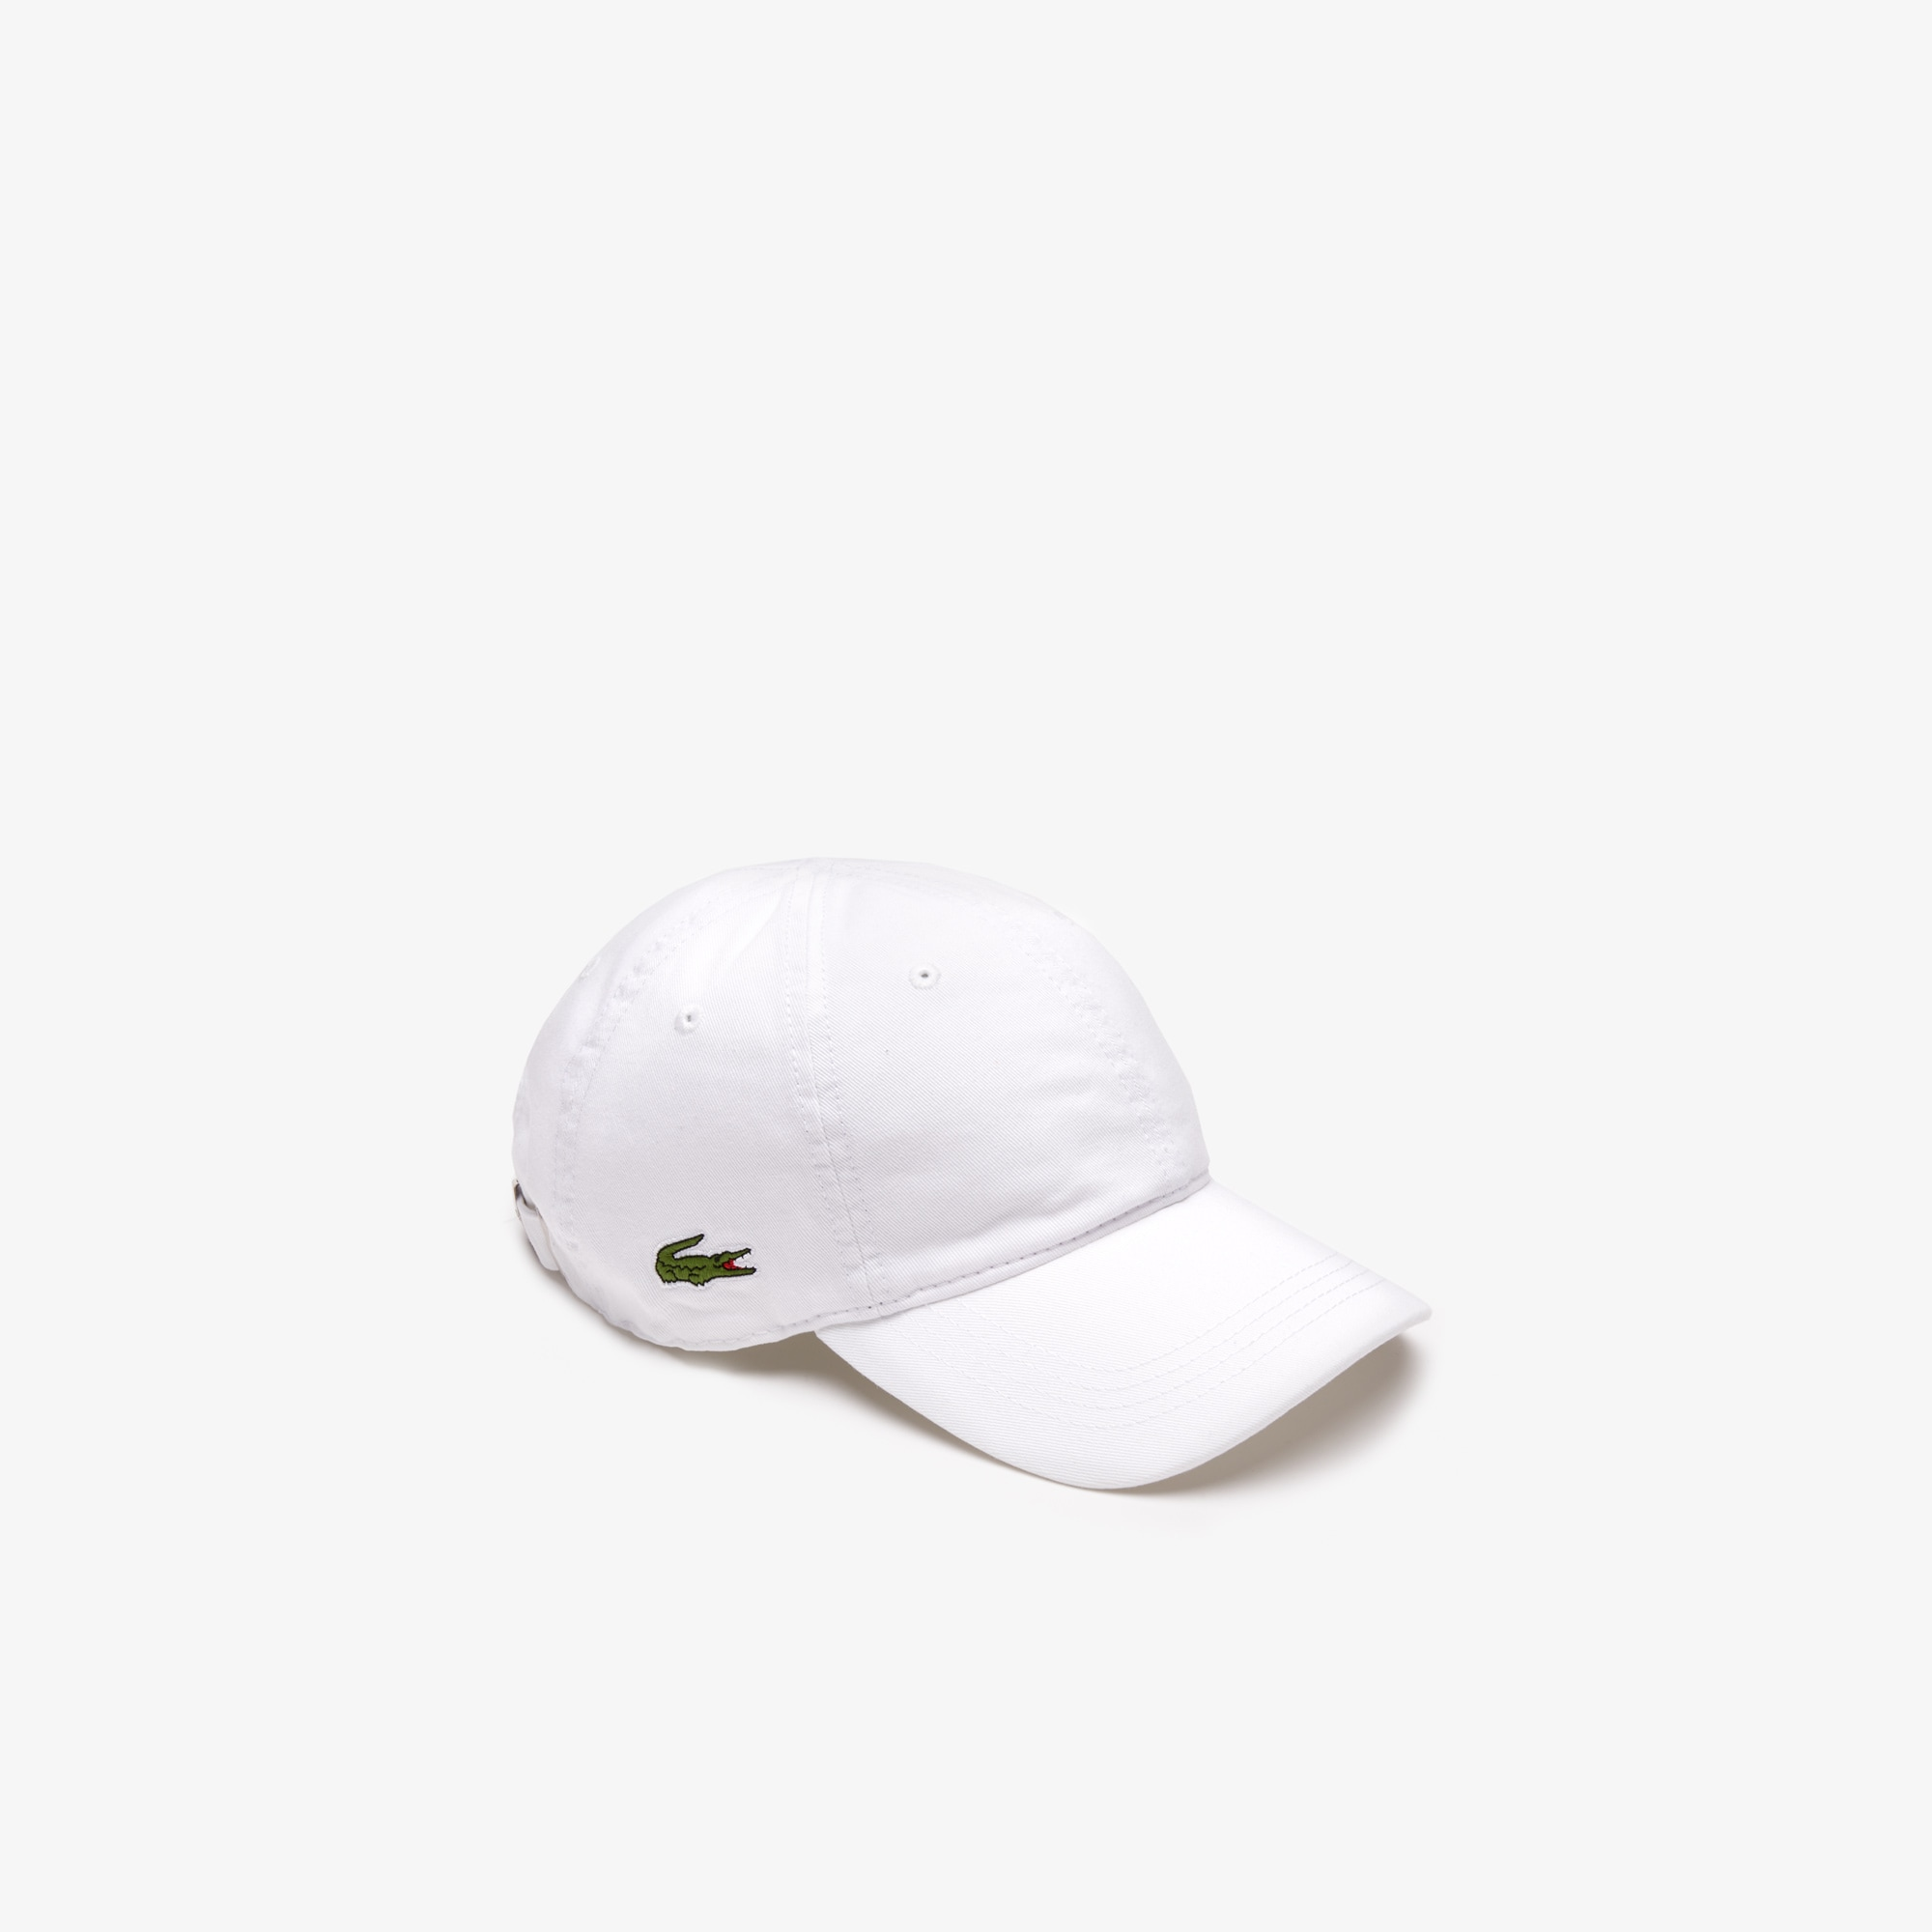 d243430a3da Caps & Hats | Men's Accessories | LACOSTE